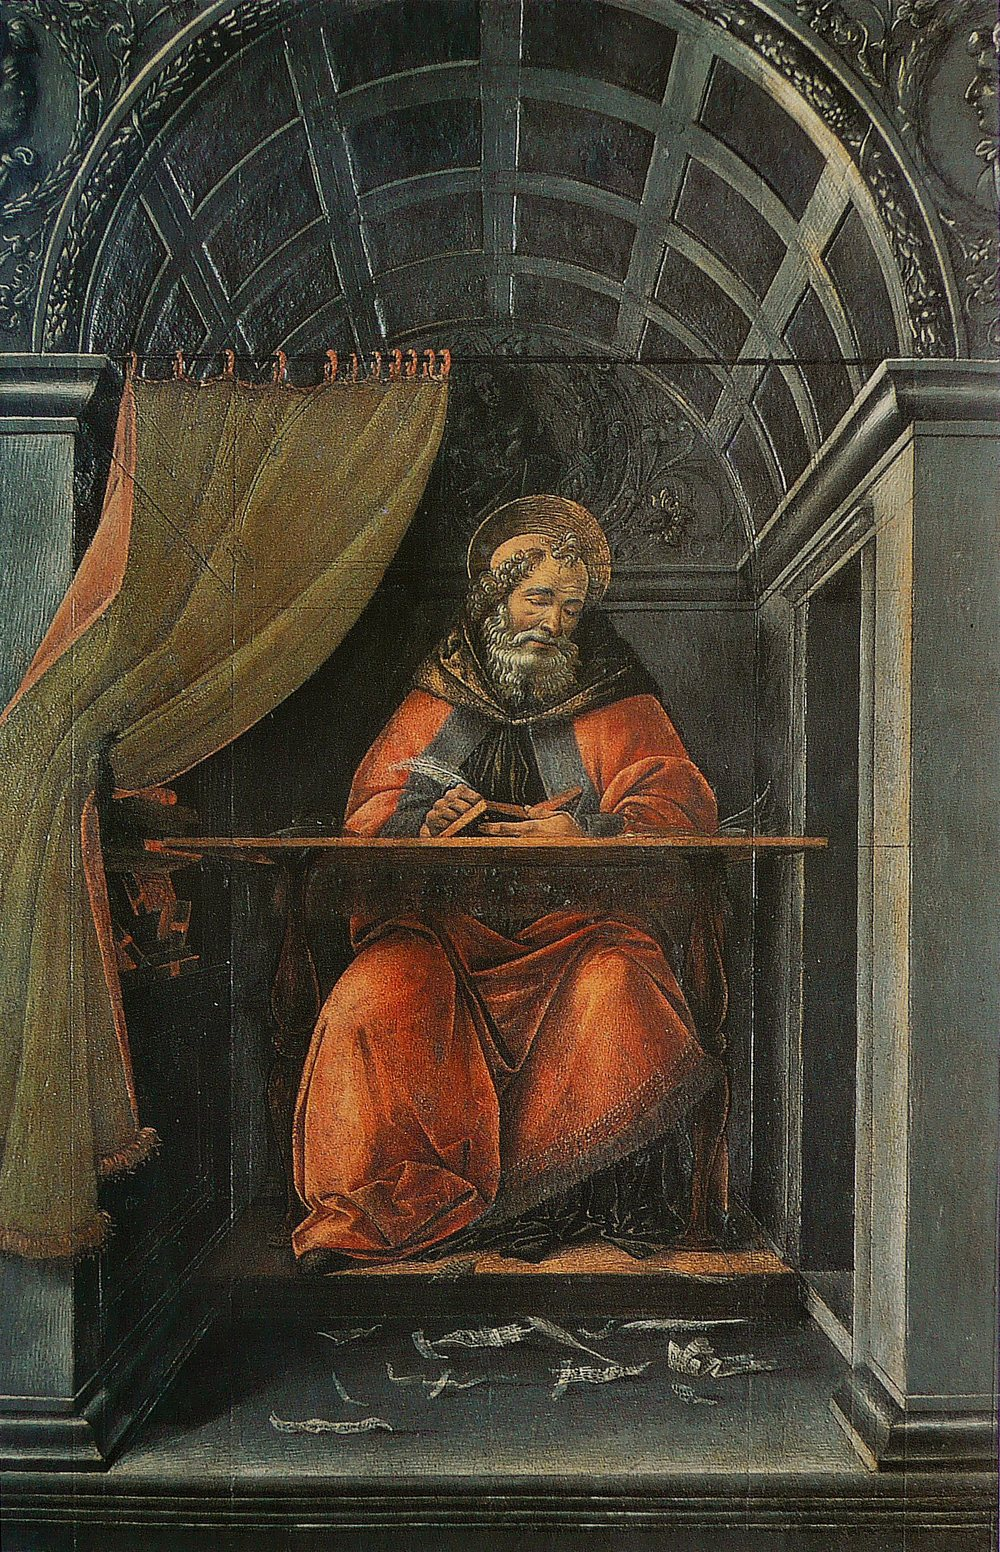 Saint Augustine in His Study, Sandro Bottticelli, completed 1490-1494.  There he is, writing brilliant zingers!